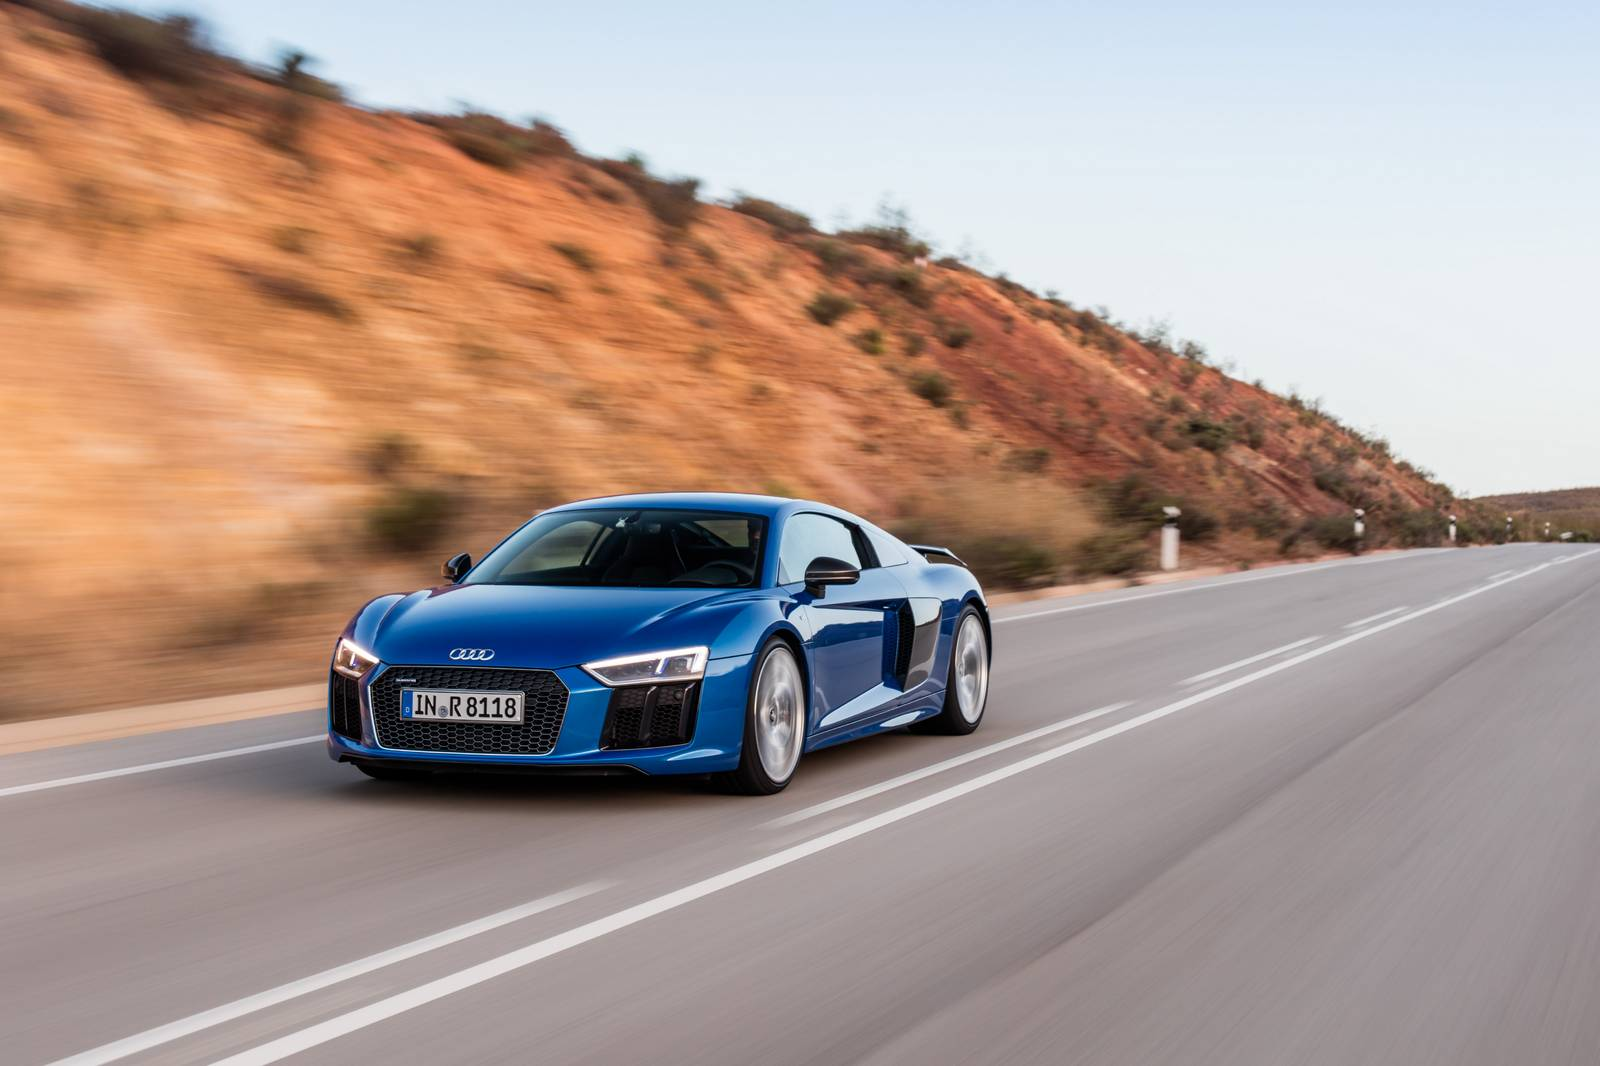 2016 audi r8 v10 priced from 162 900 in the us gtspirit. Cars Review. Best American Auto & Cars Review